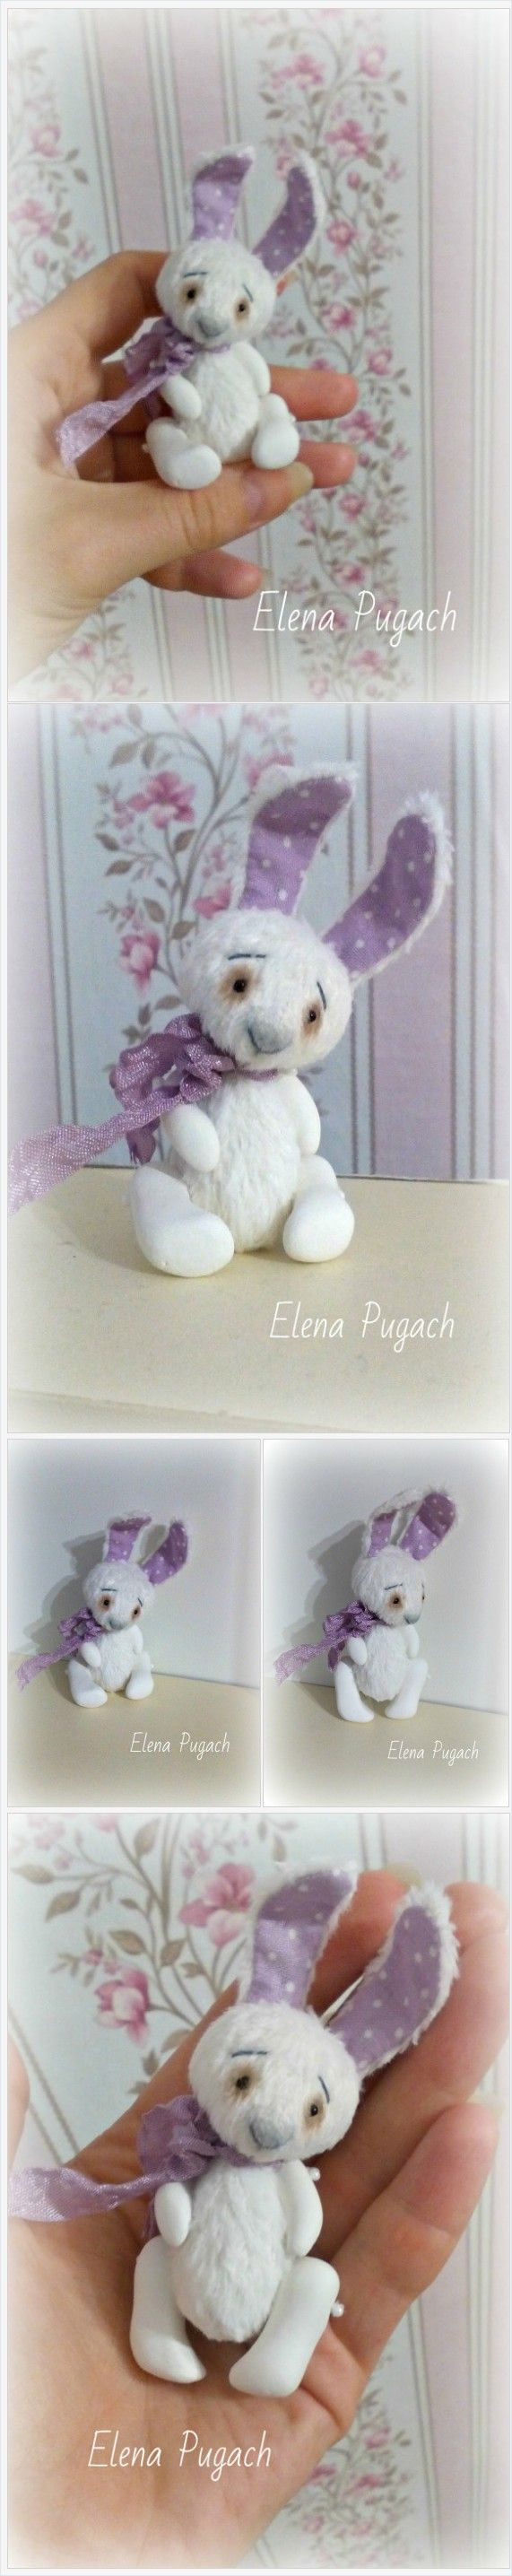 Big sale! Mini teddy bunny Lavender Marshmallow with paws molded from clay Gift Teddy toy Stuffed elephant Gift for her